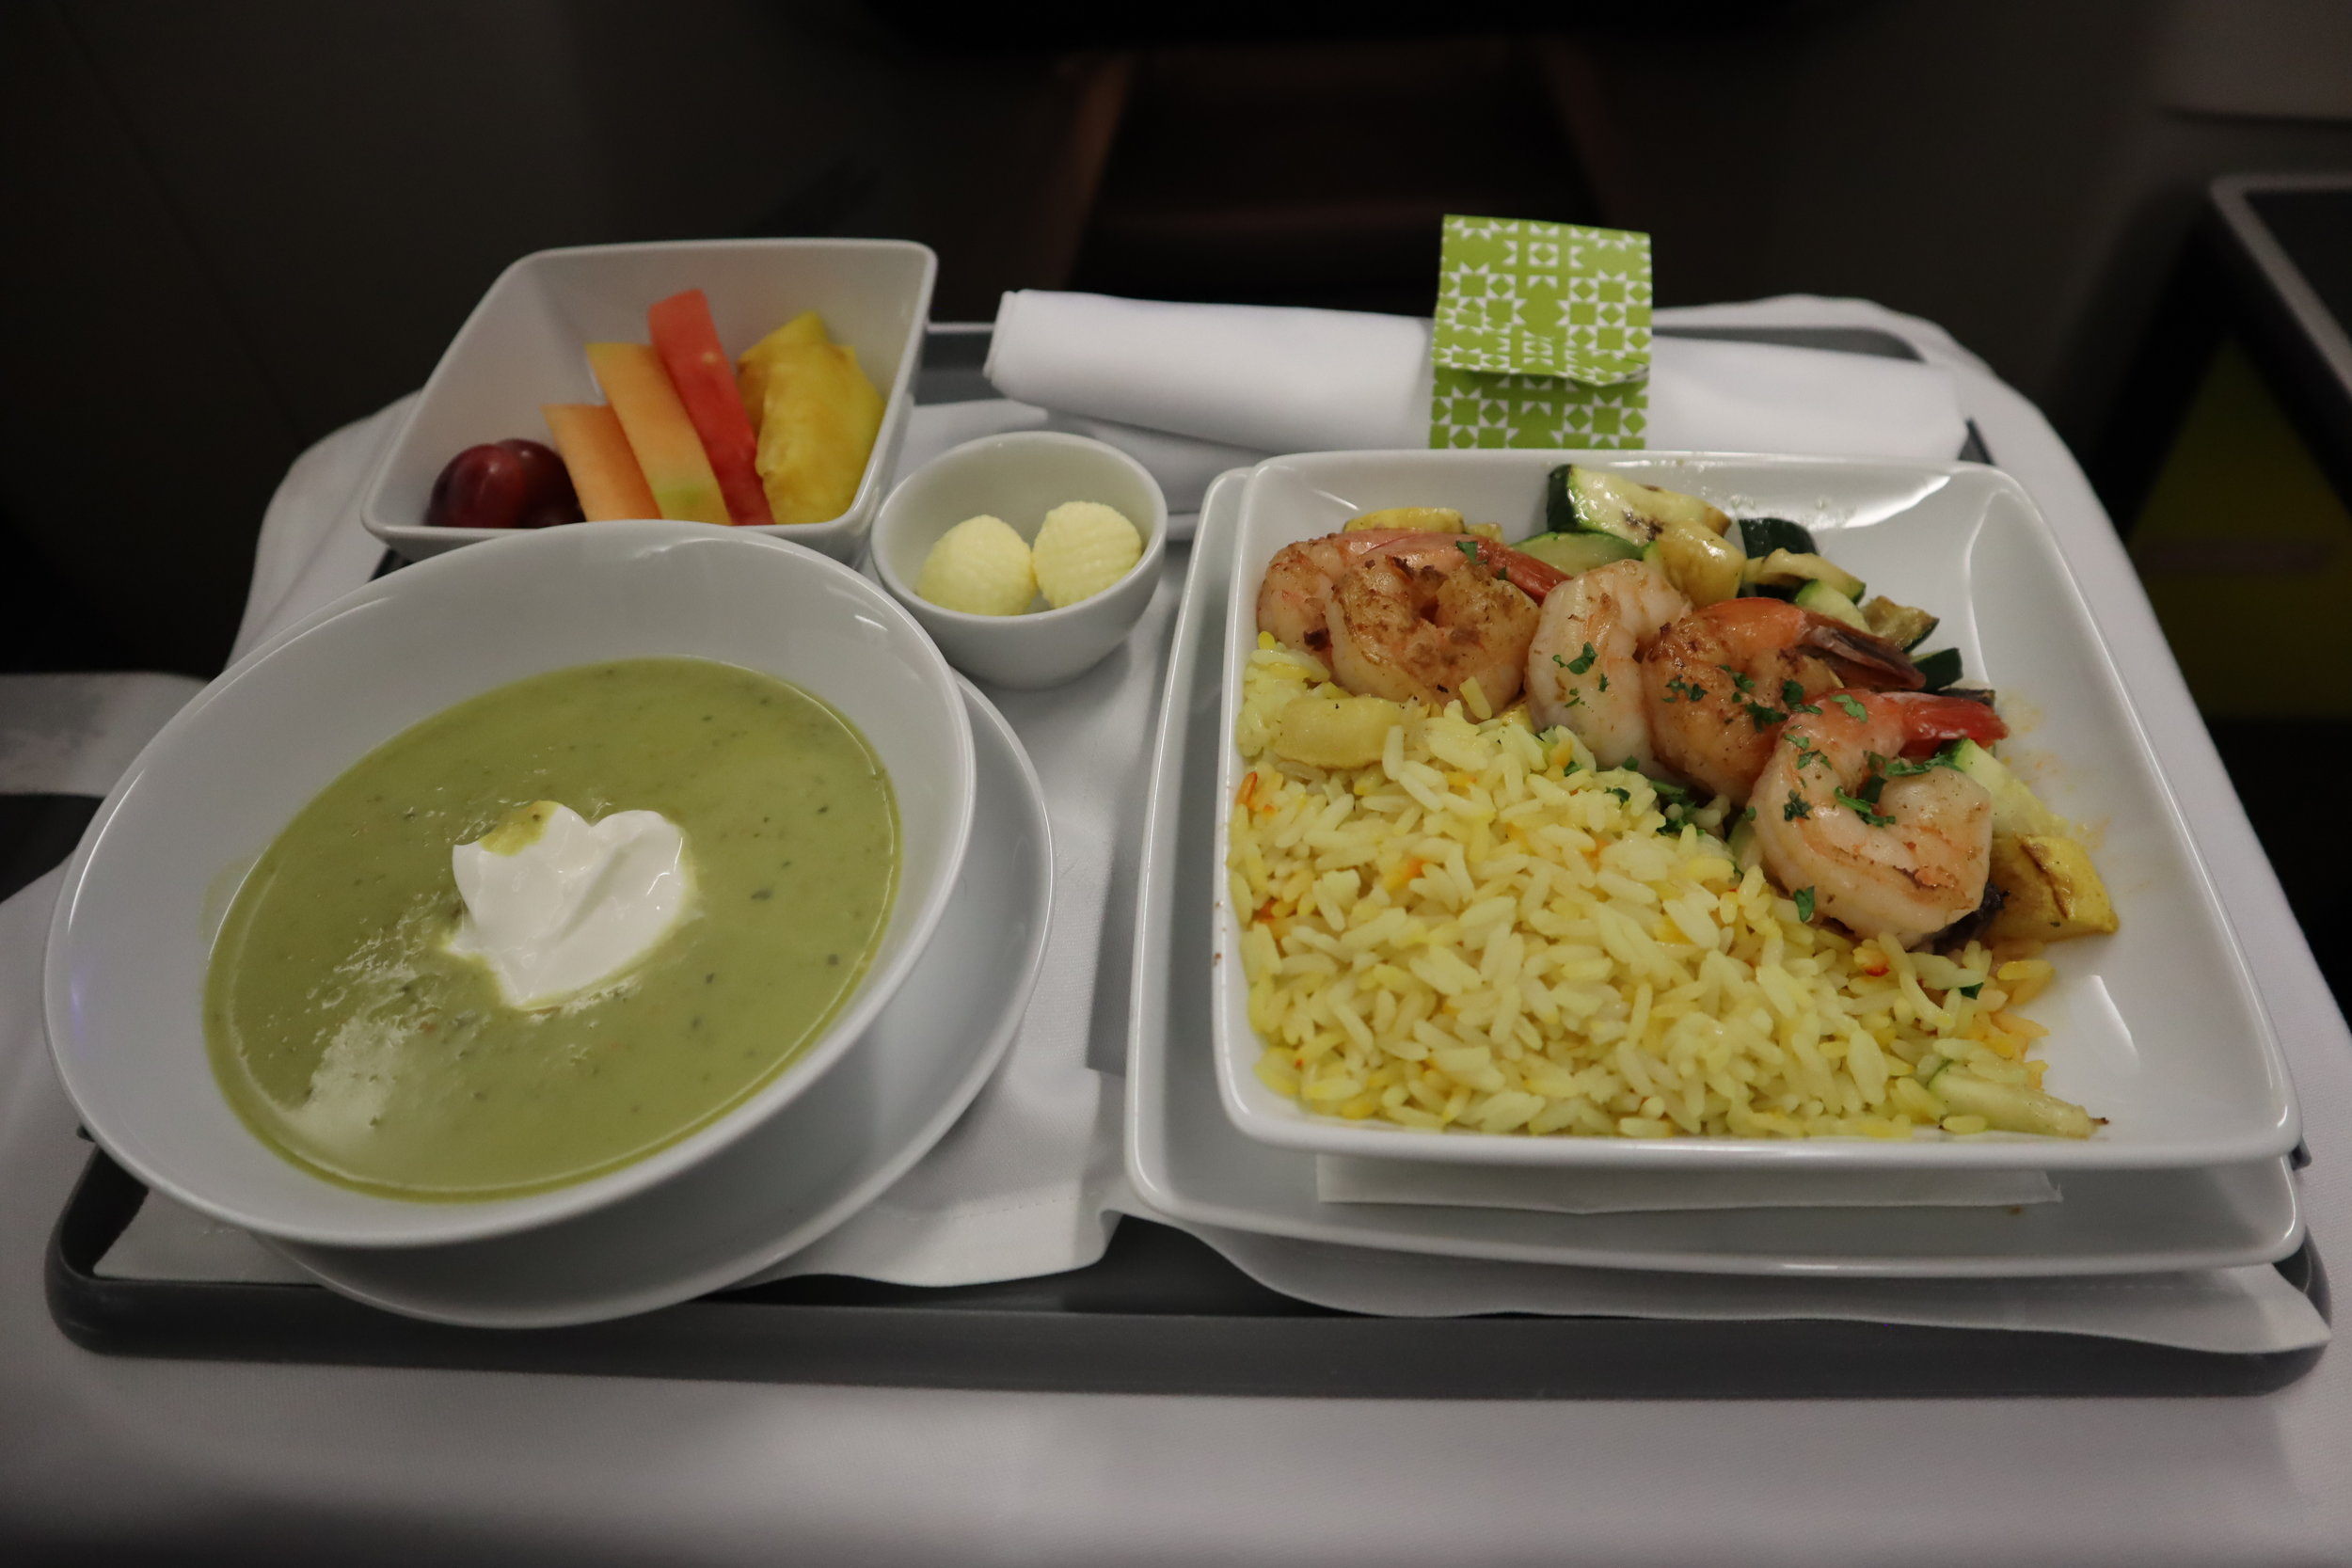 TAP Air Portugal business class – Meal service